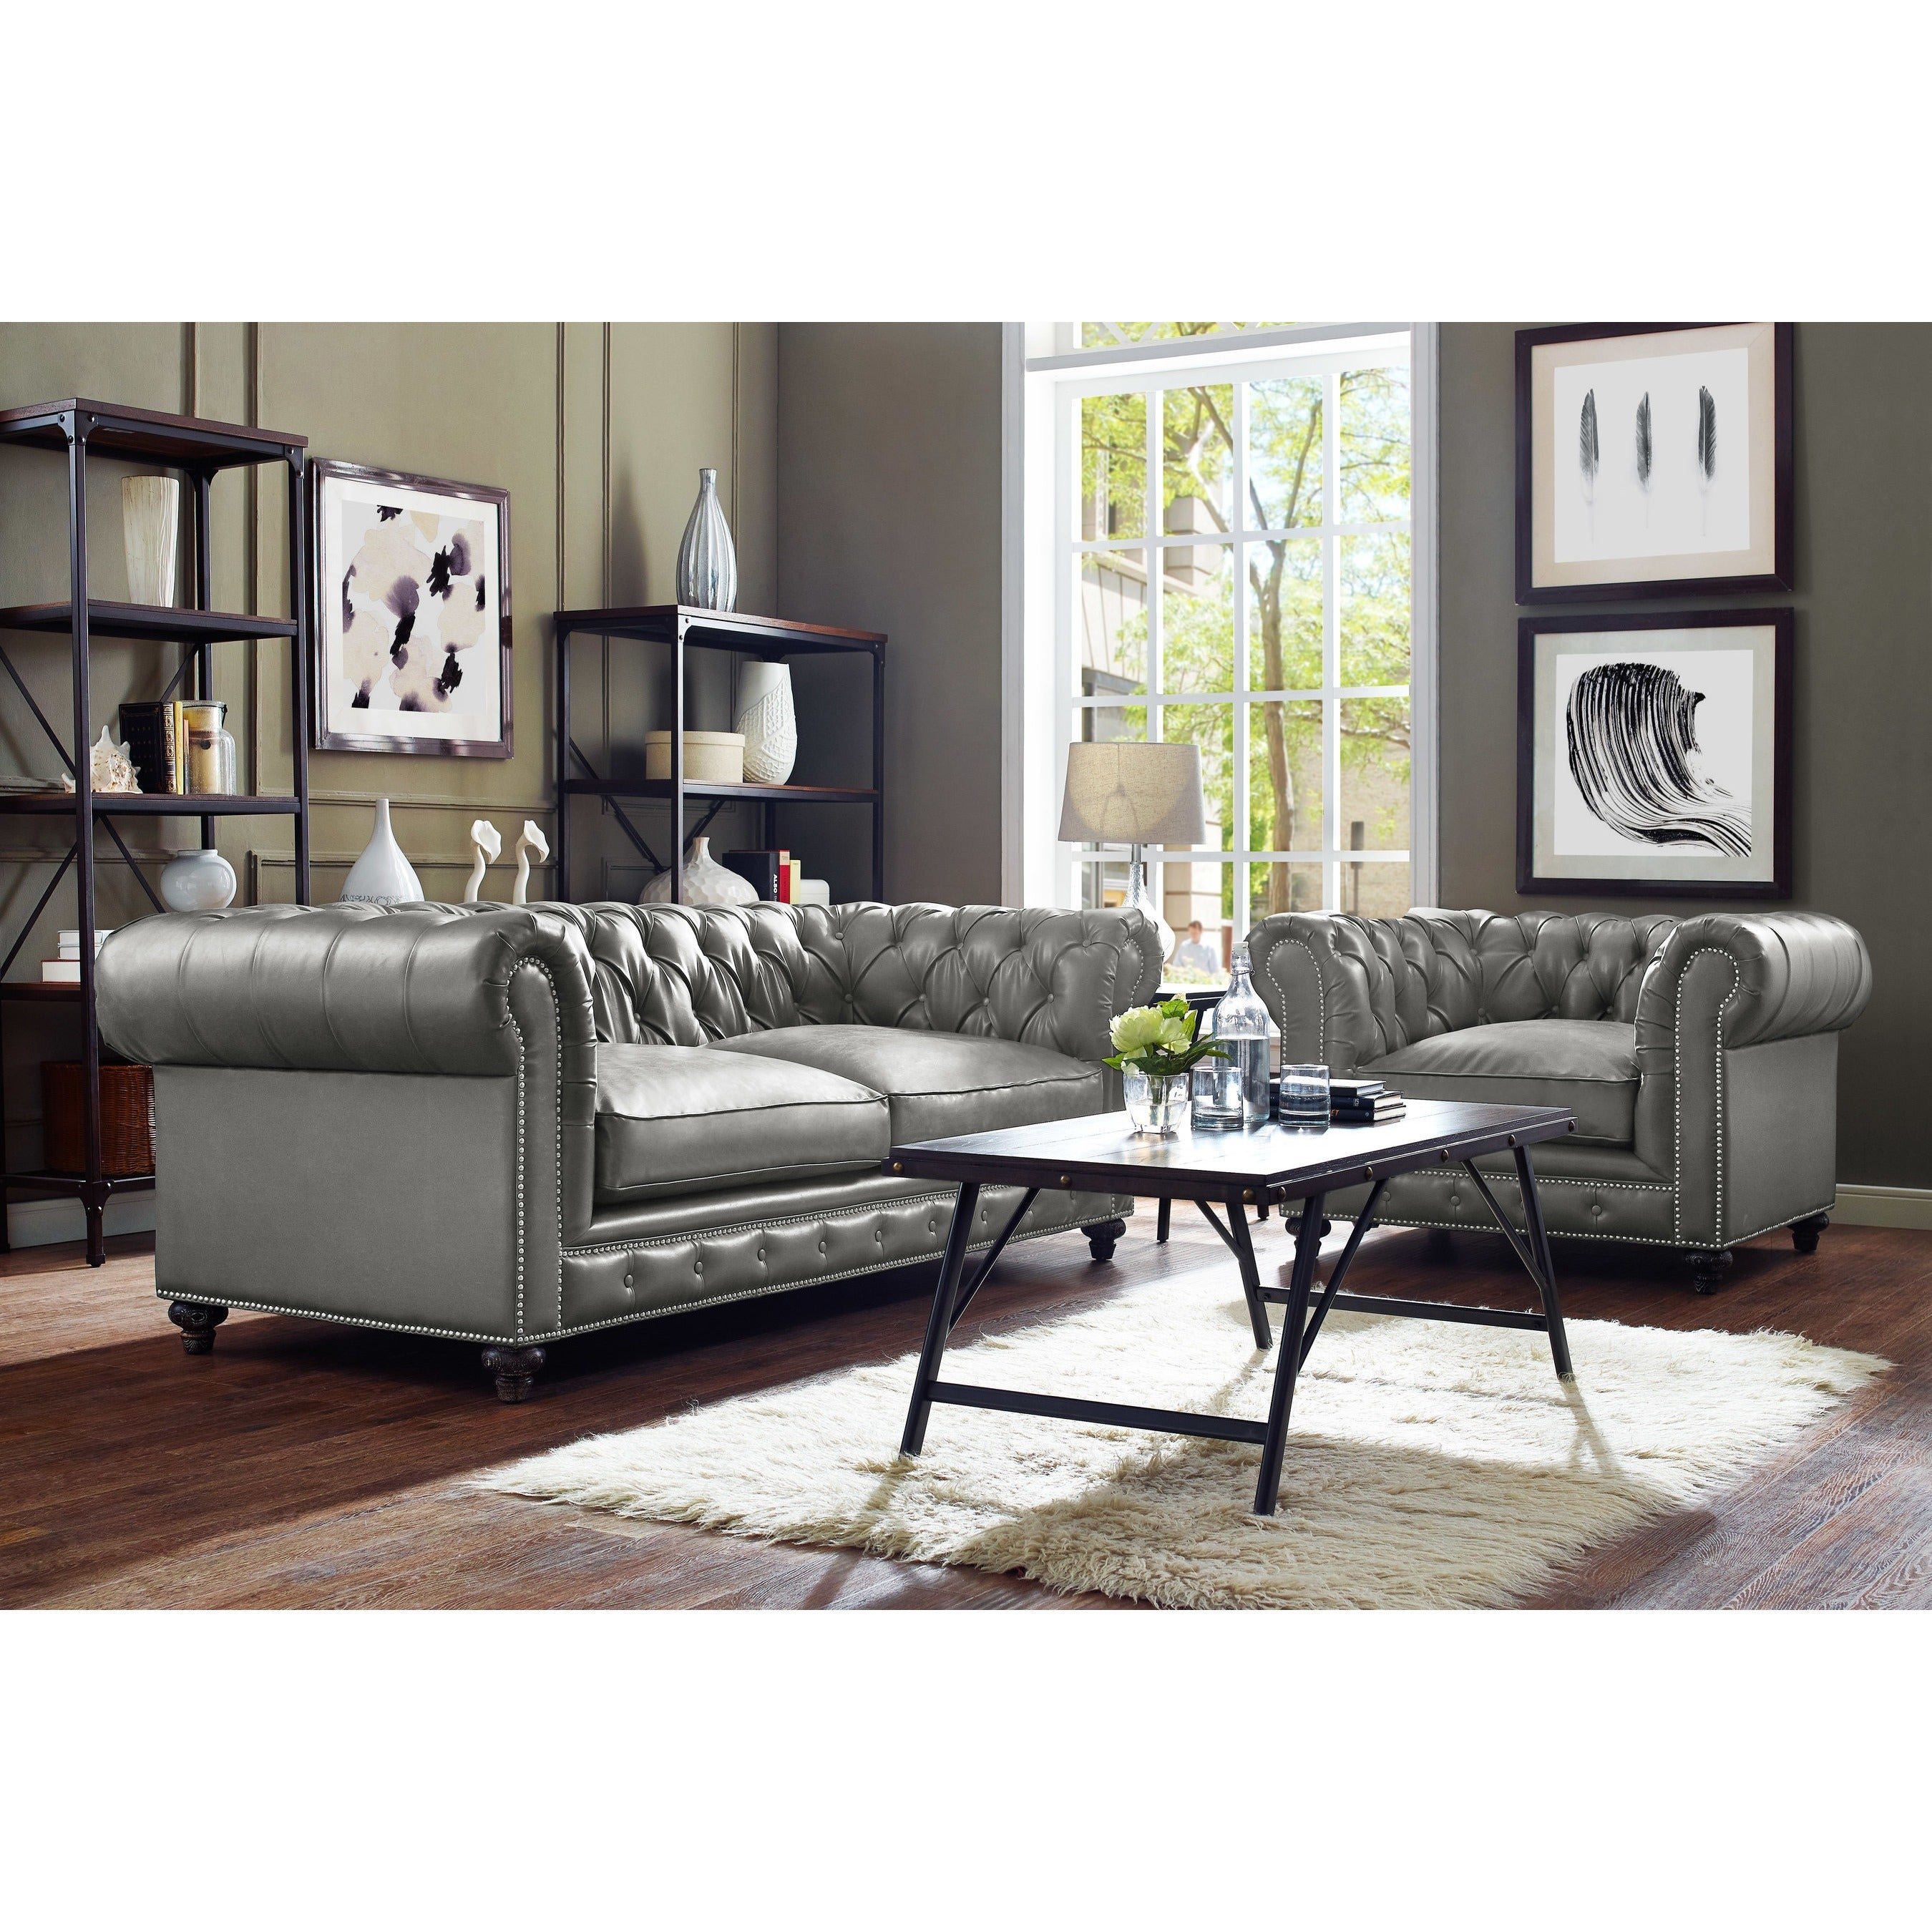 Shop Rustic Grey Leather Sofa With Chesterfield Design   Free Shipping  Today   Overstock.com   11651453